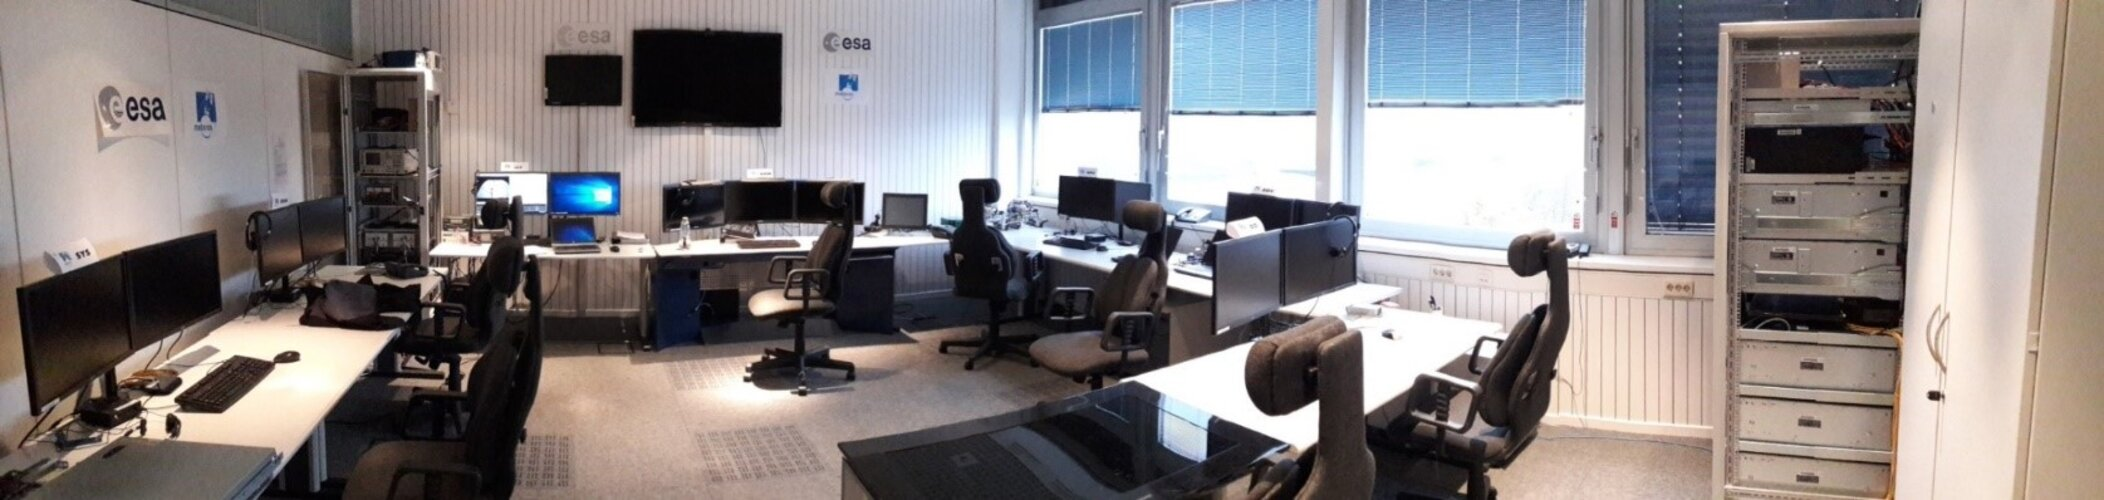 OPS-SAT's mission control